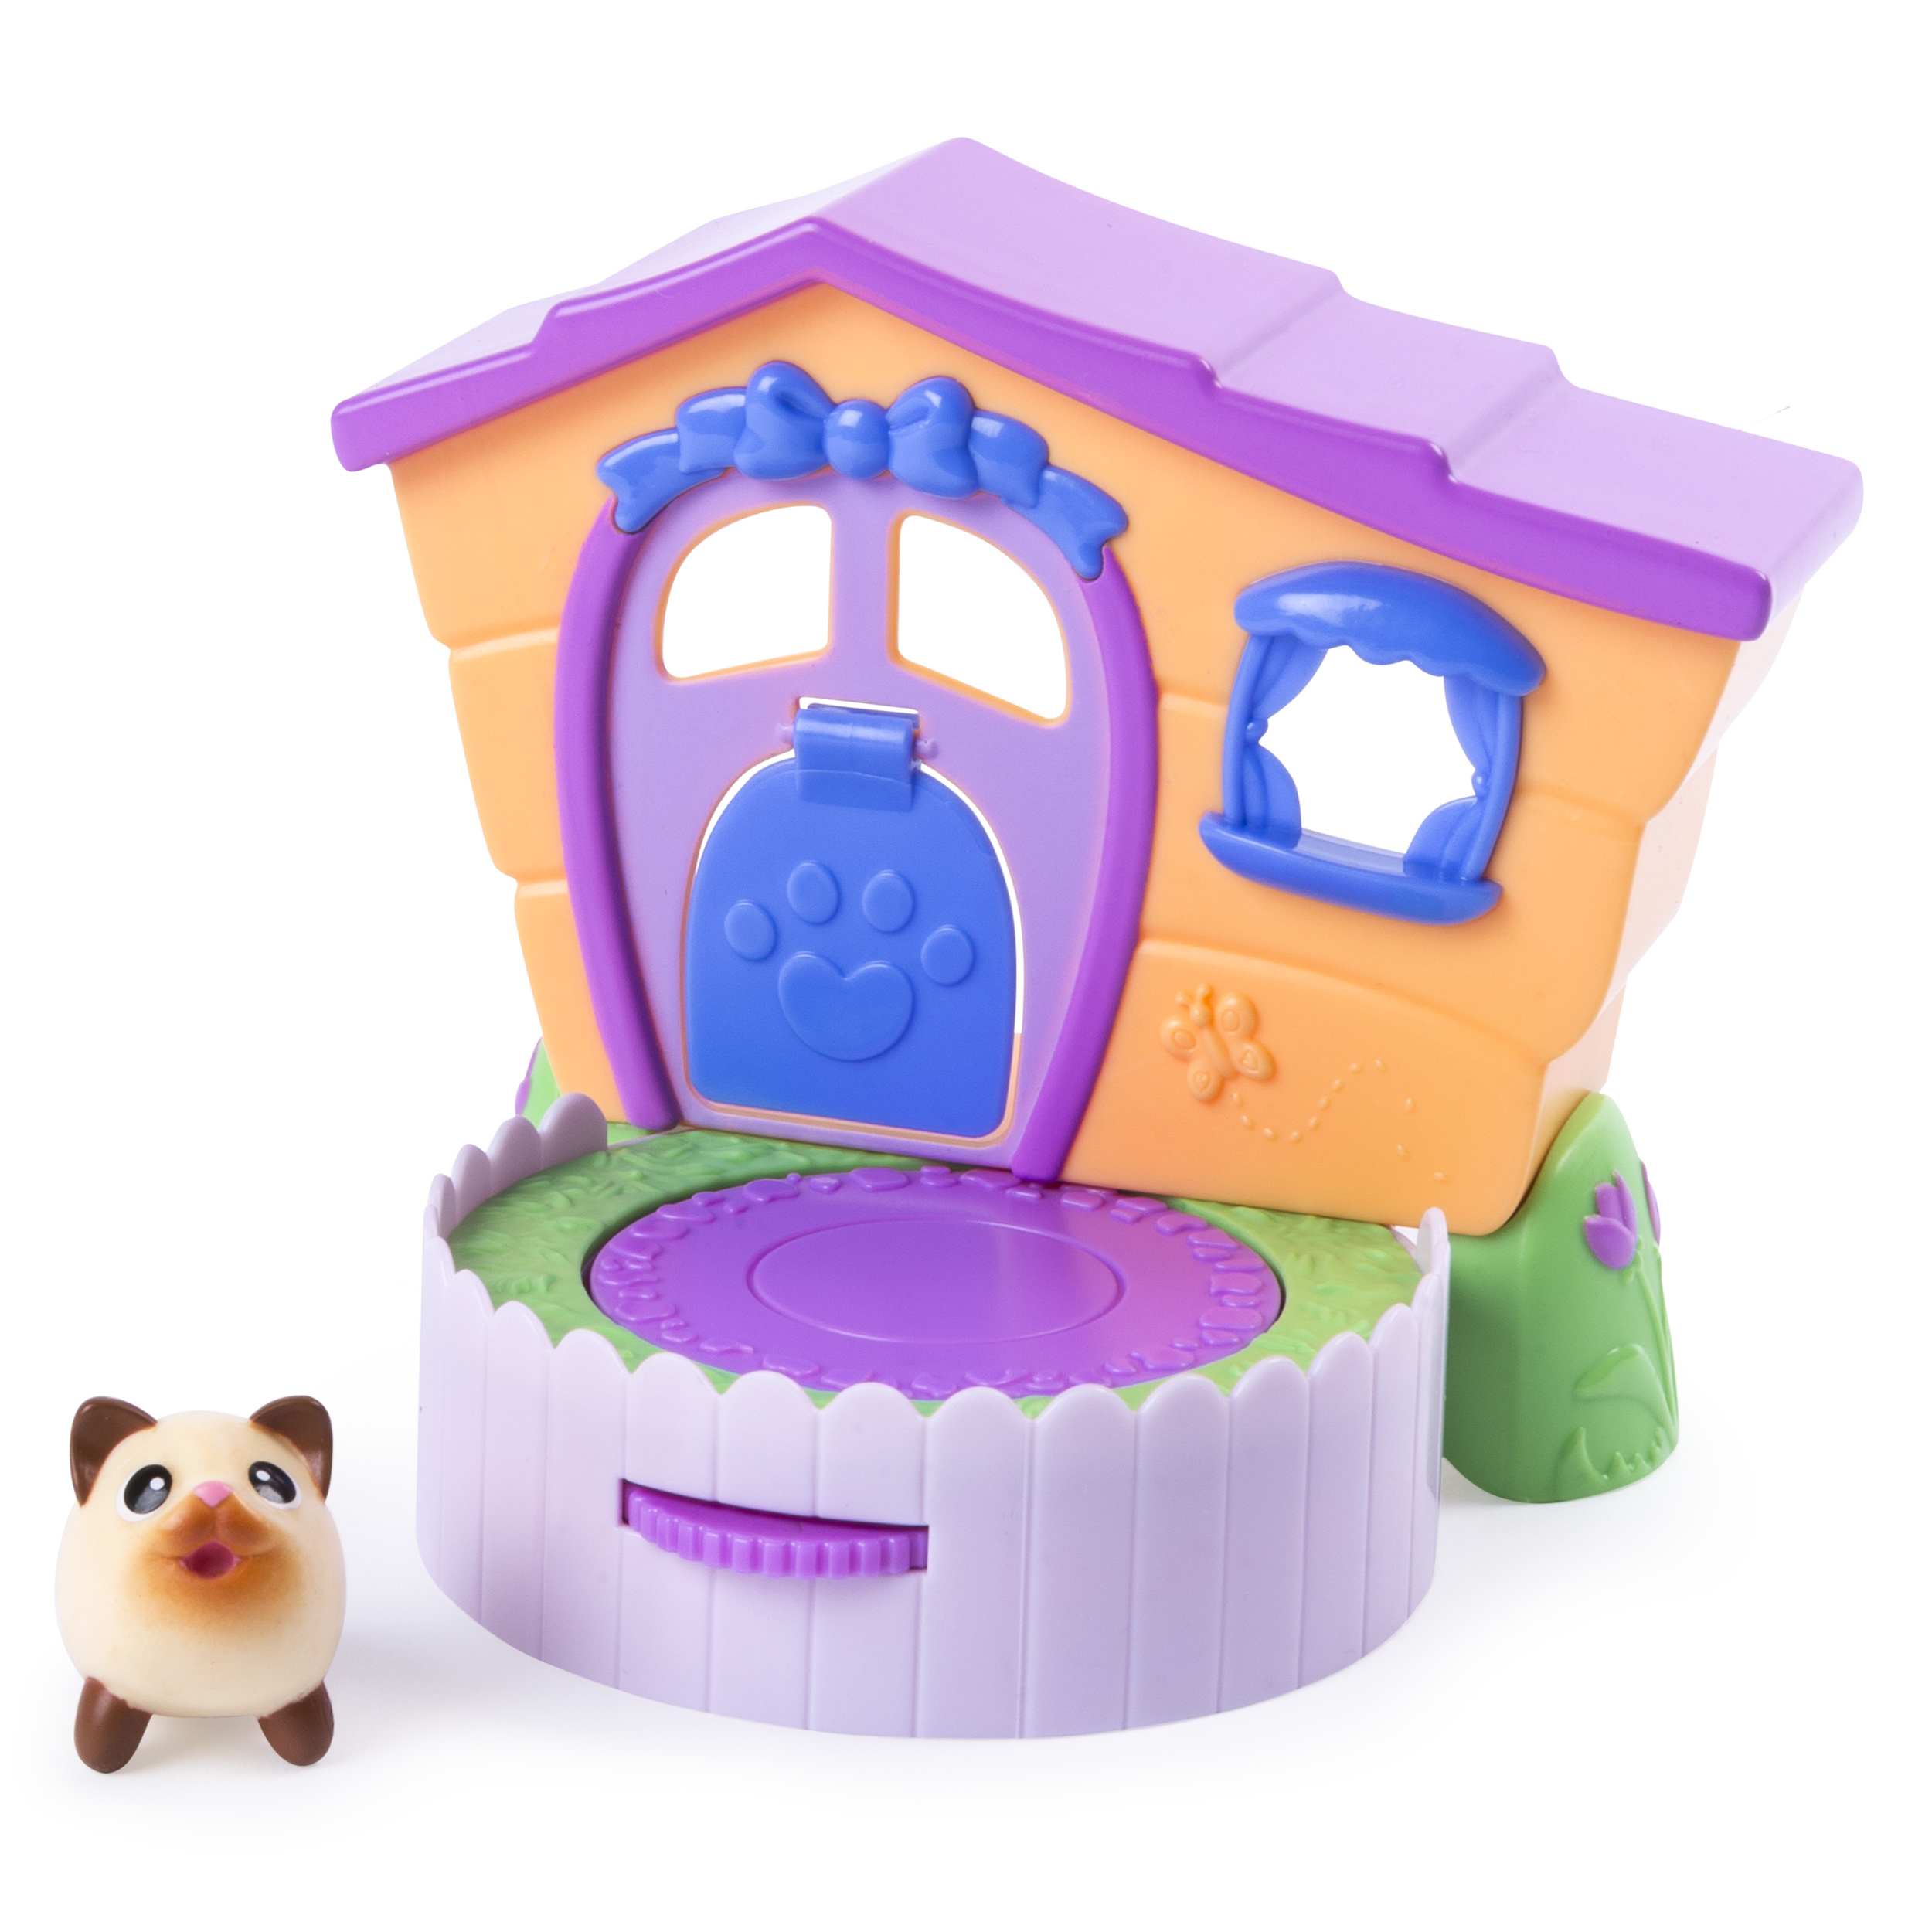 <p>Chubby Puppies & Friends – 2-in 1 Flip N' Play House Playset with Siamese Kitty Collectible Figure</p>